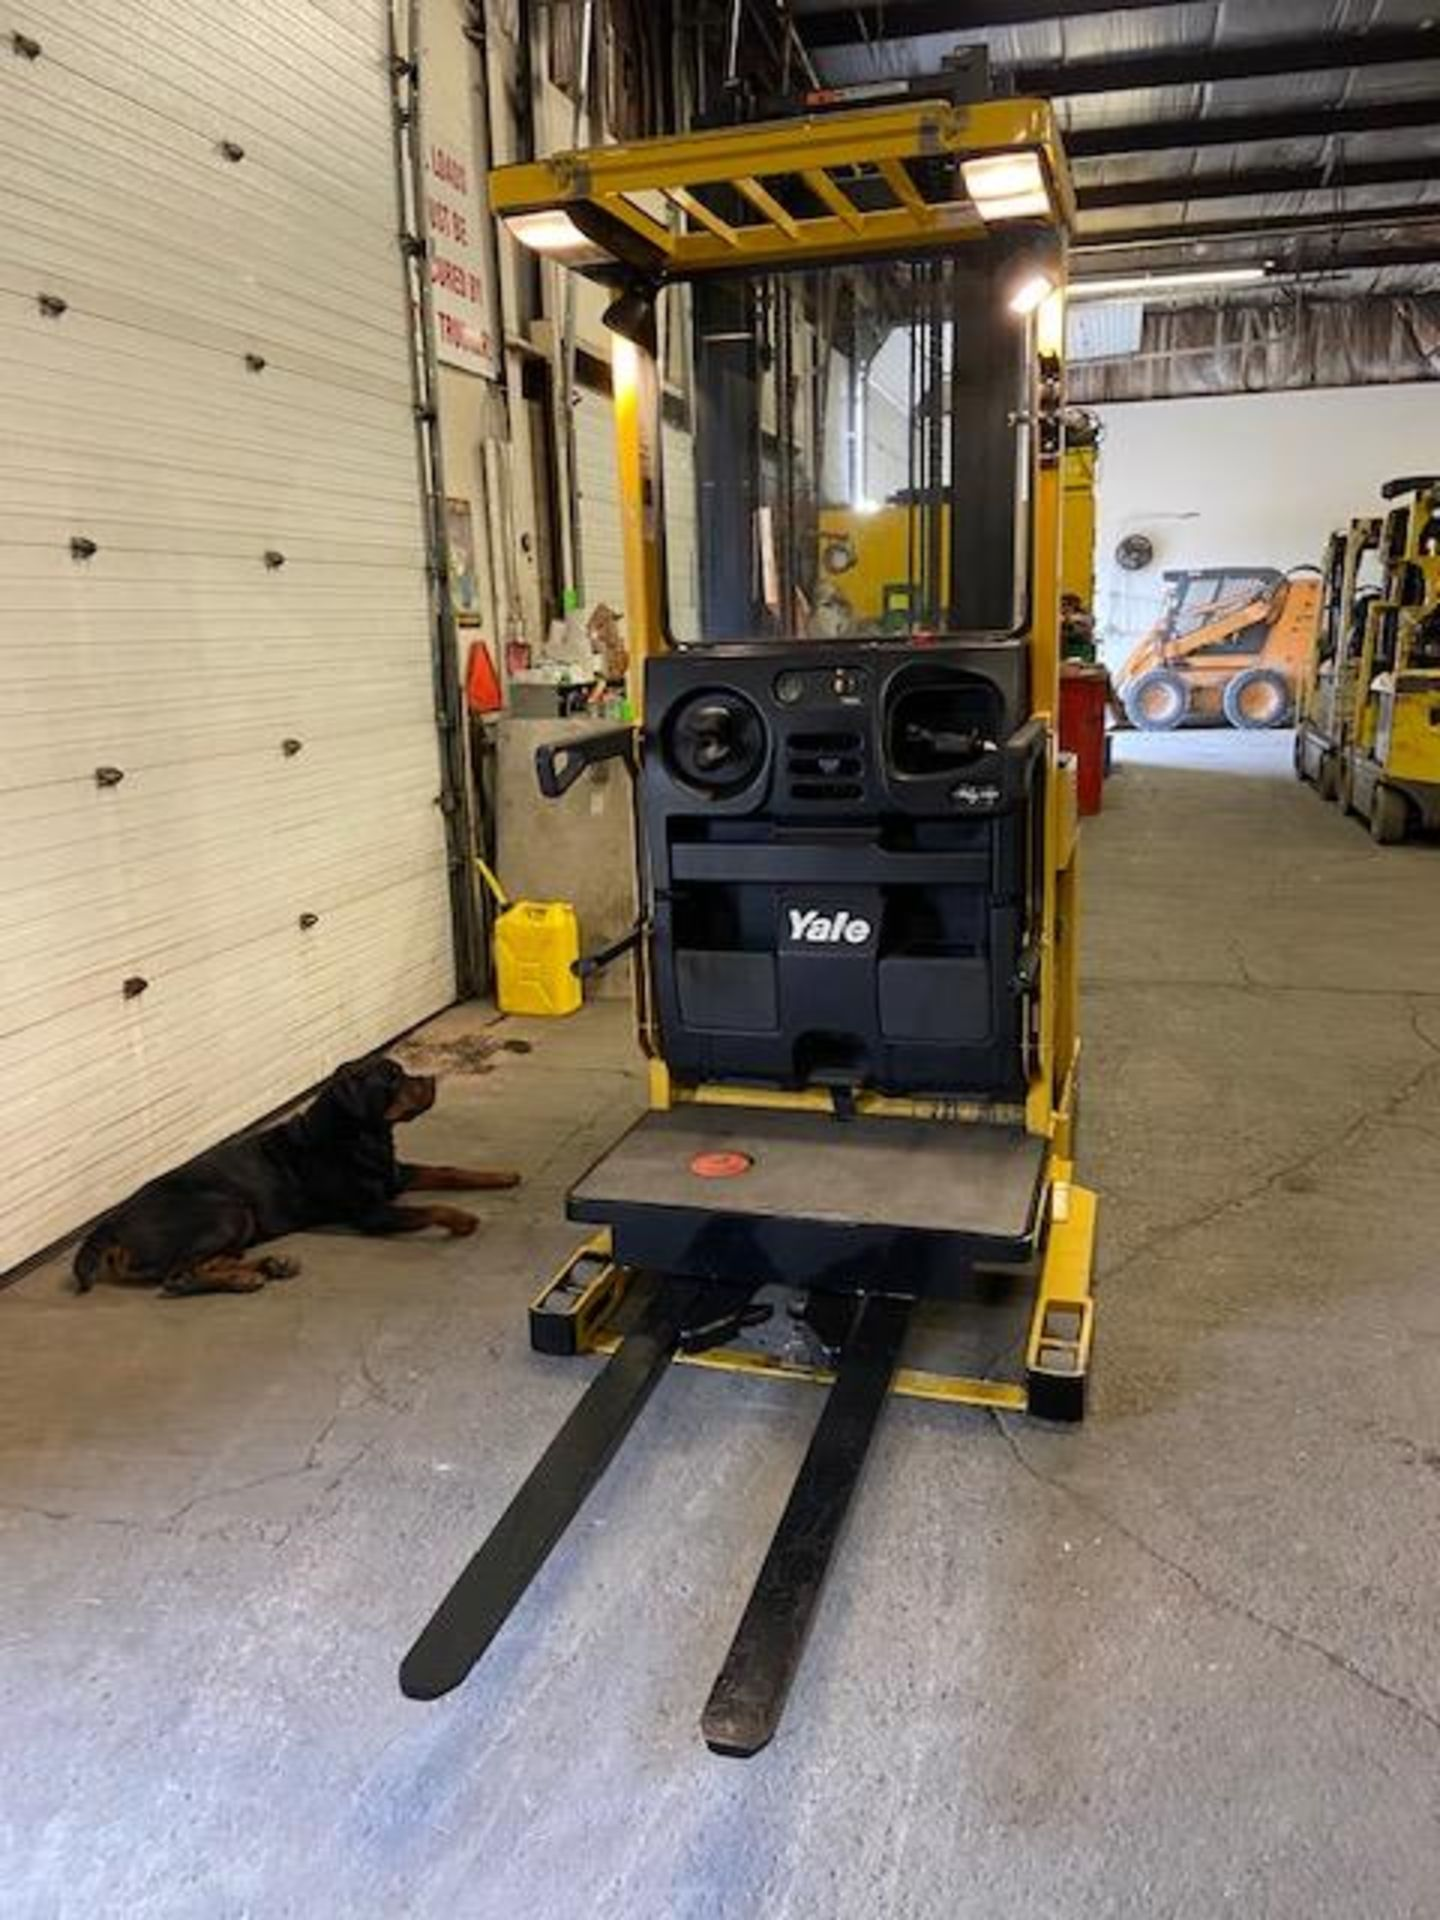 FREE CUSTOMS - Yale Order Picker Electric Powered Pallet Cart Lifter with low hours - Image 2 of 3